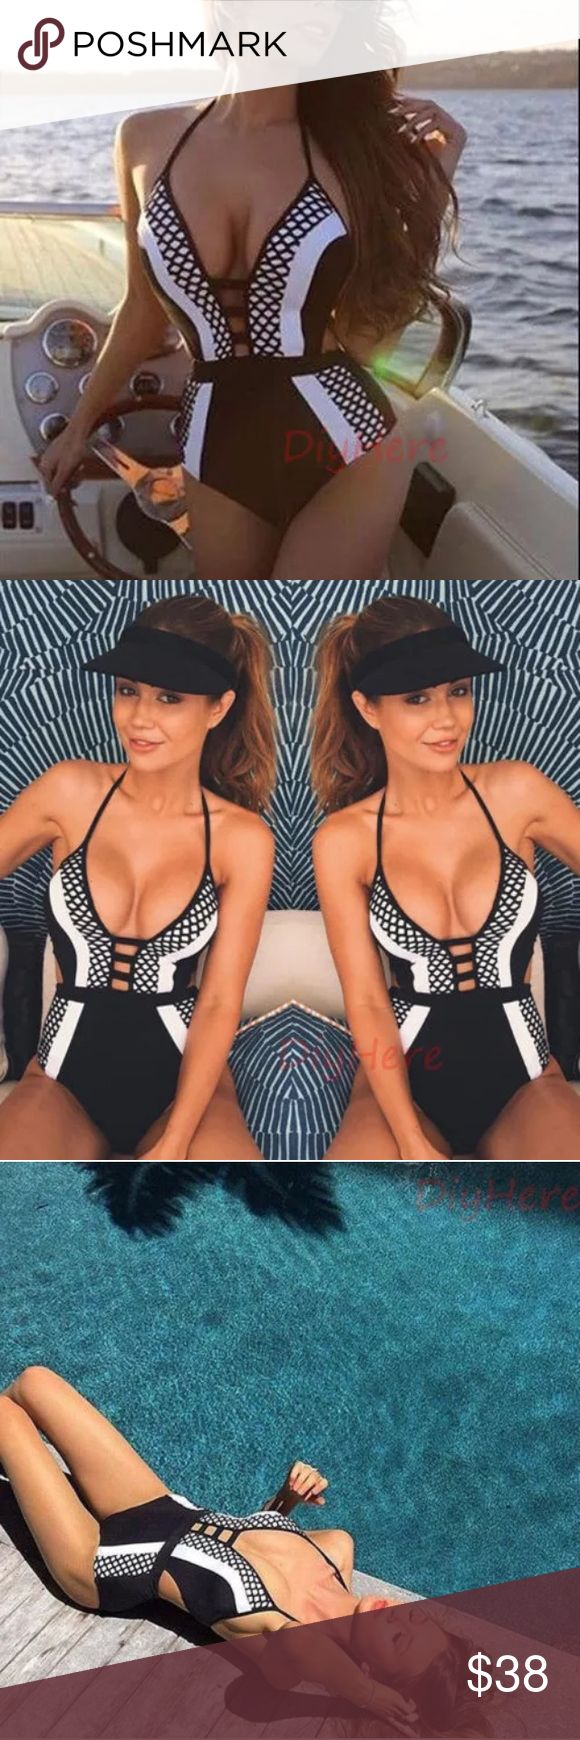 One piece monokini push-up Sexy One Piece Swimwear Swimsuit Bathing Monokini Push Up Padded Bikini. Material: polyester and spandex. Full coverage in behind                                                                    ⭐️please read size chart before ordering Swim One Pieces